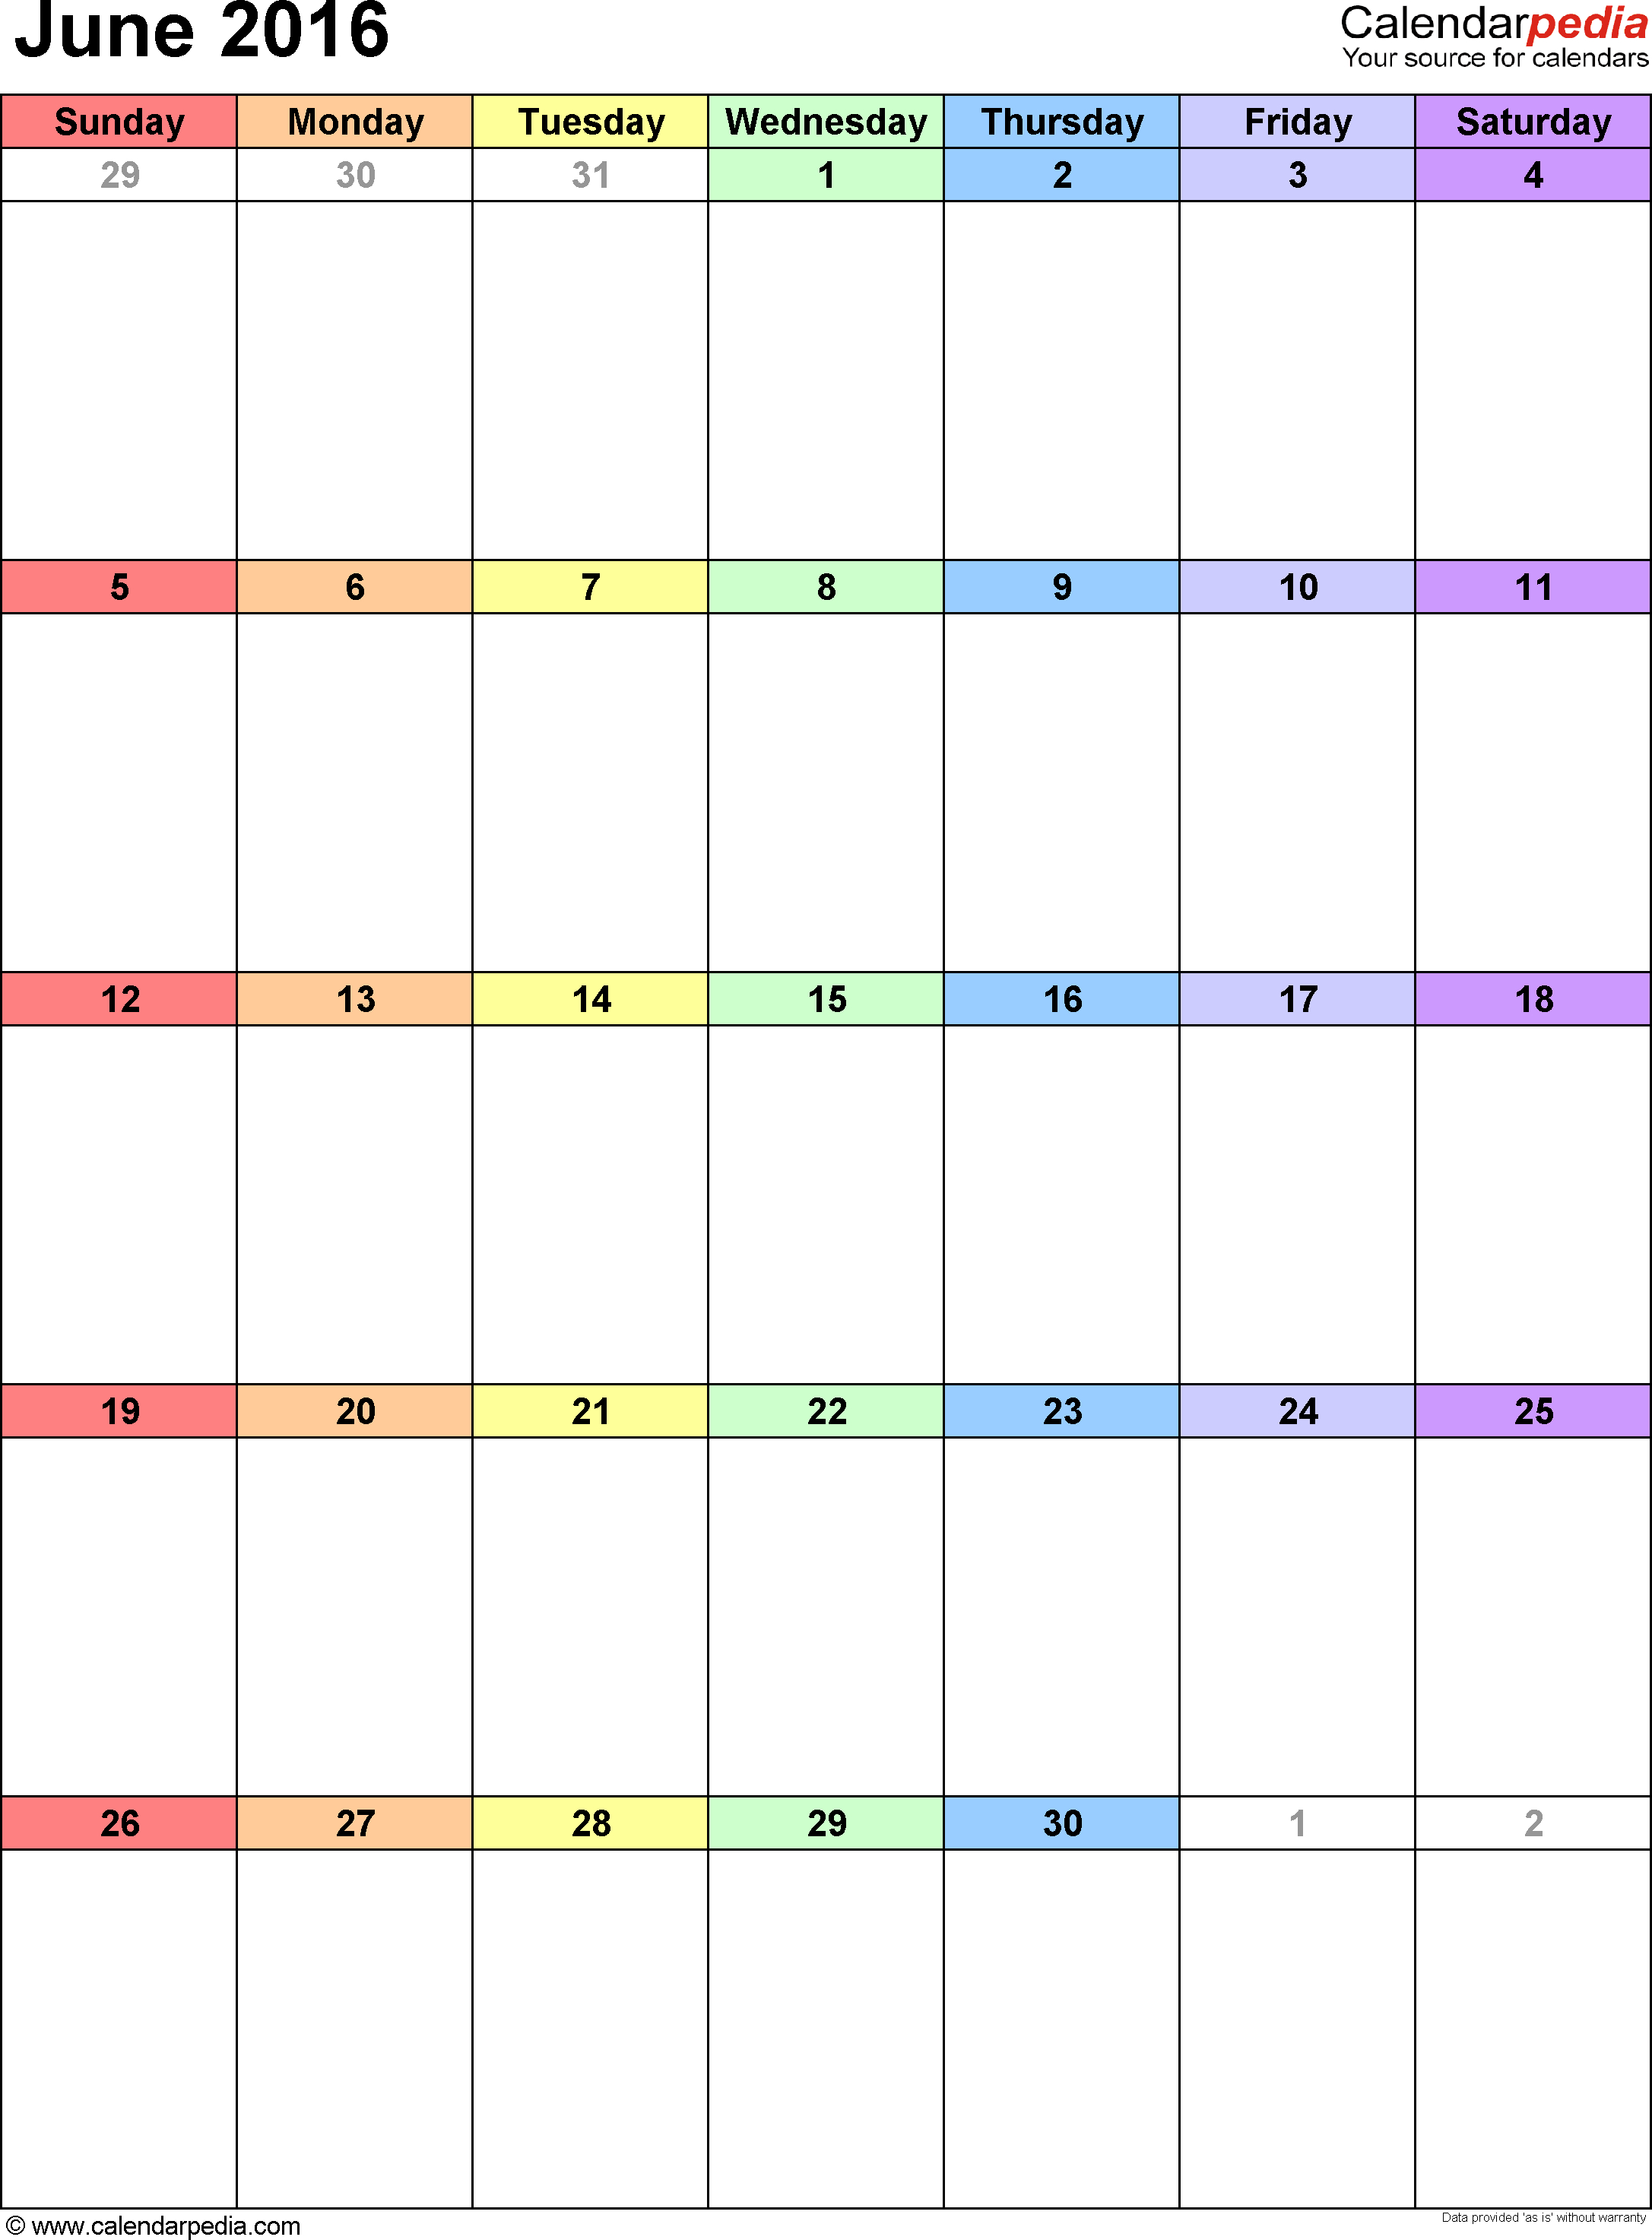 June 2016  Calendar Templates For Word, Excel And Pdf within June 2016 Calendar Printable